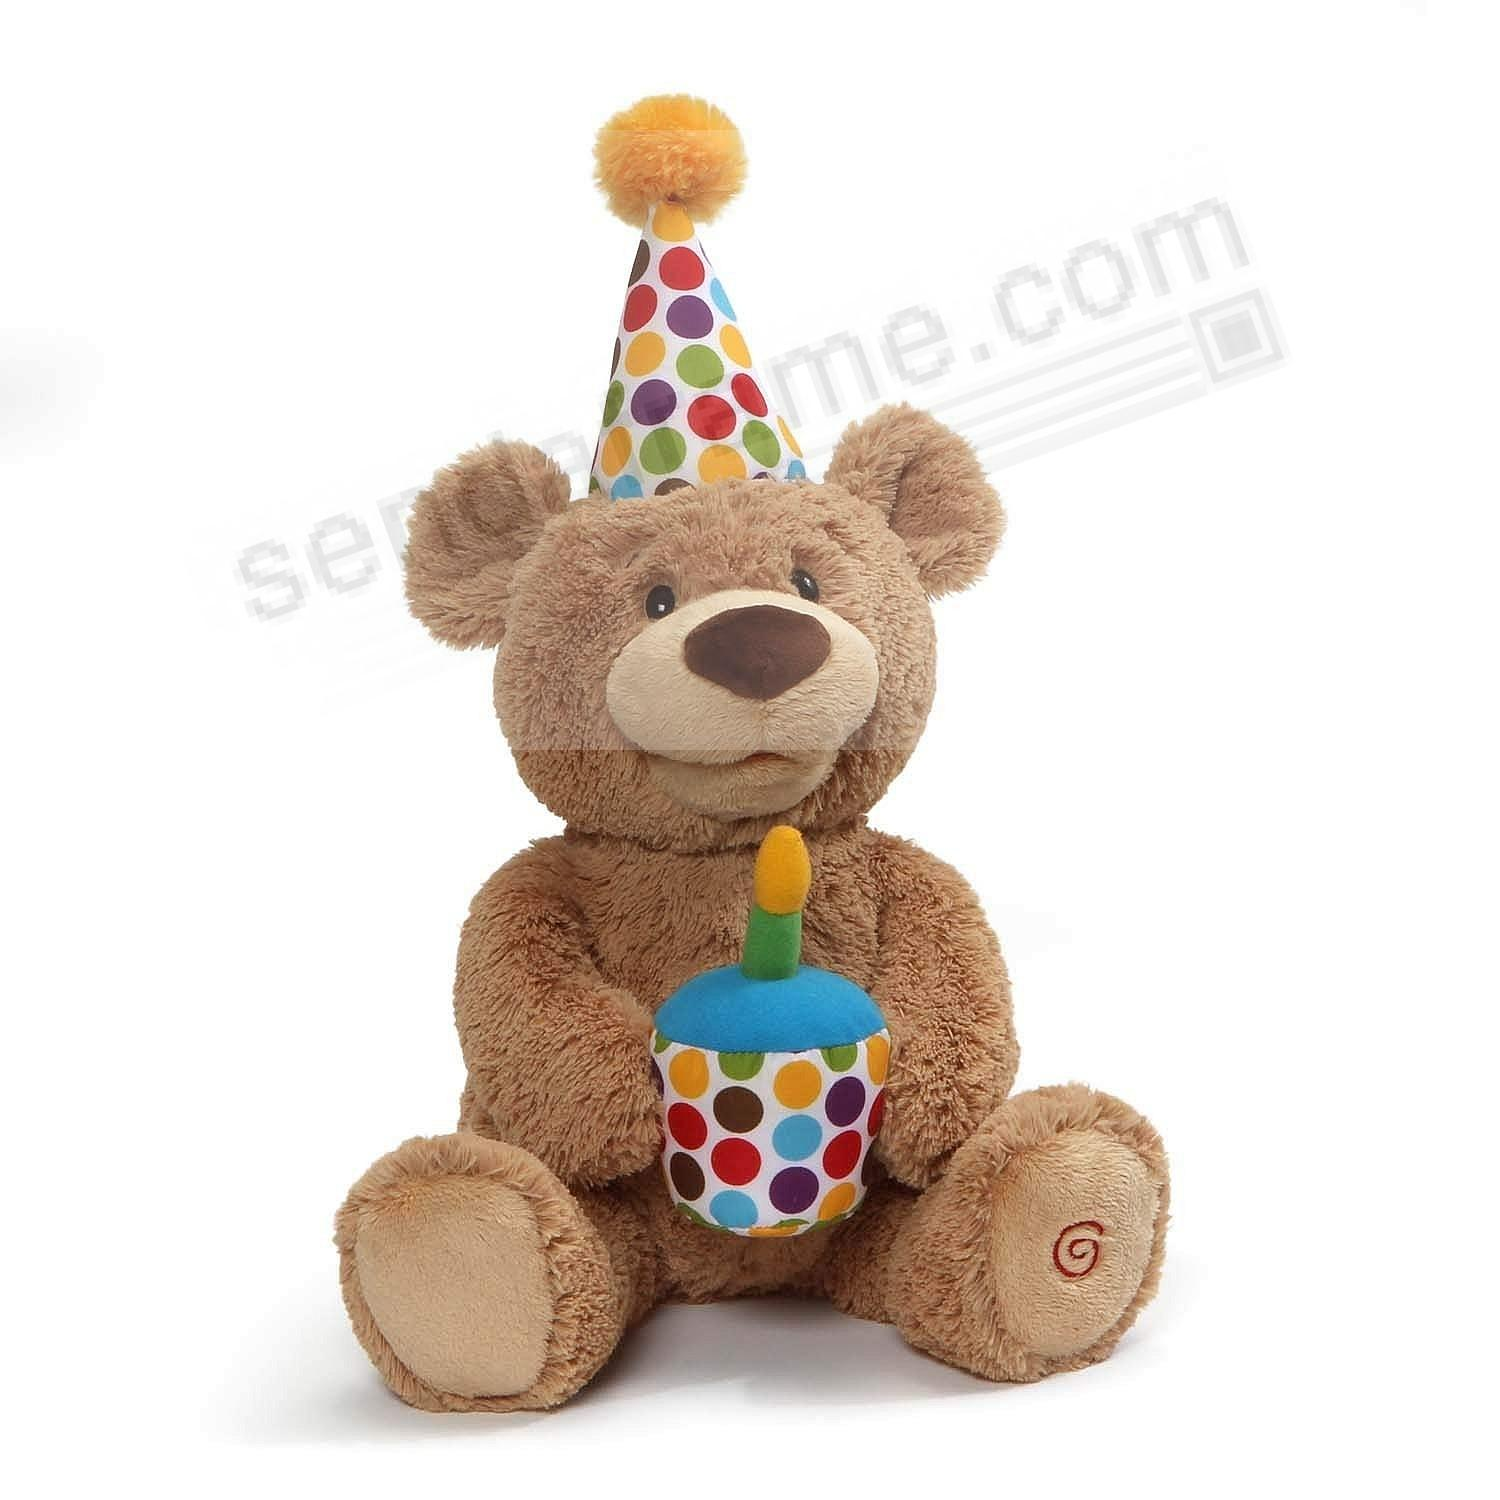 HAPPY BIRTHDAY ANIMATED TEDDY Plush Bear toy by Gund®